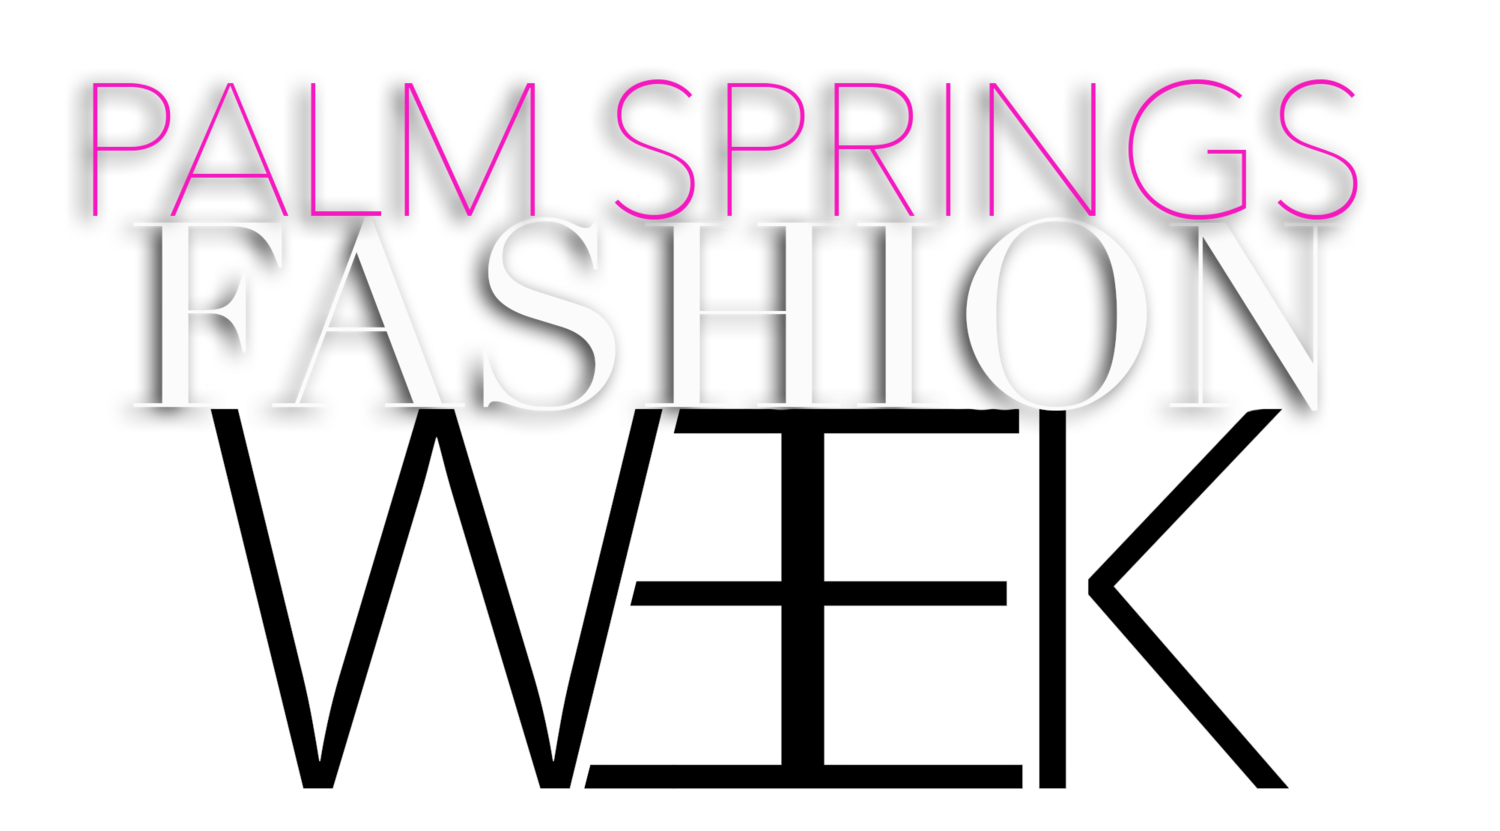 PALM SPRINGS FASHION WEEK